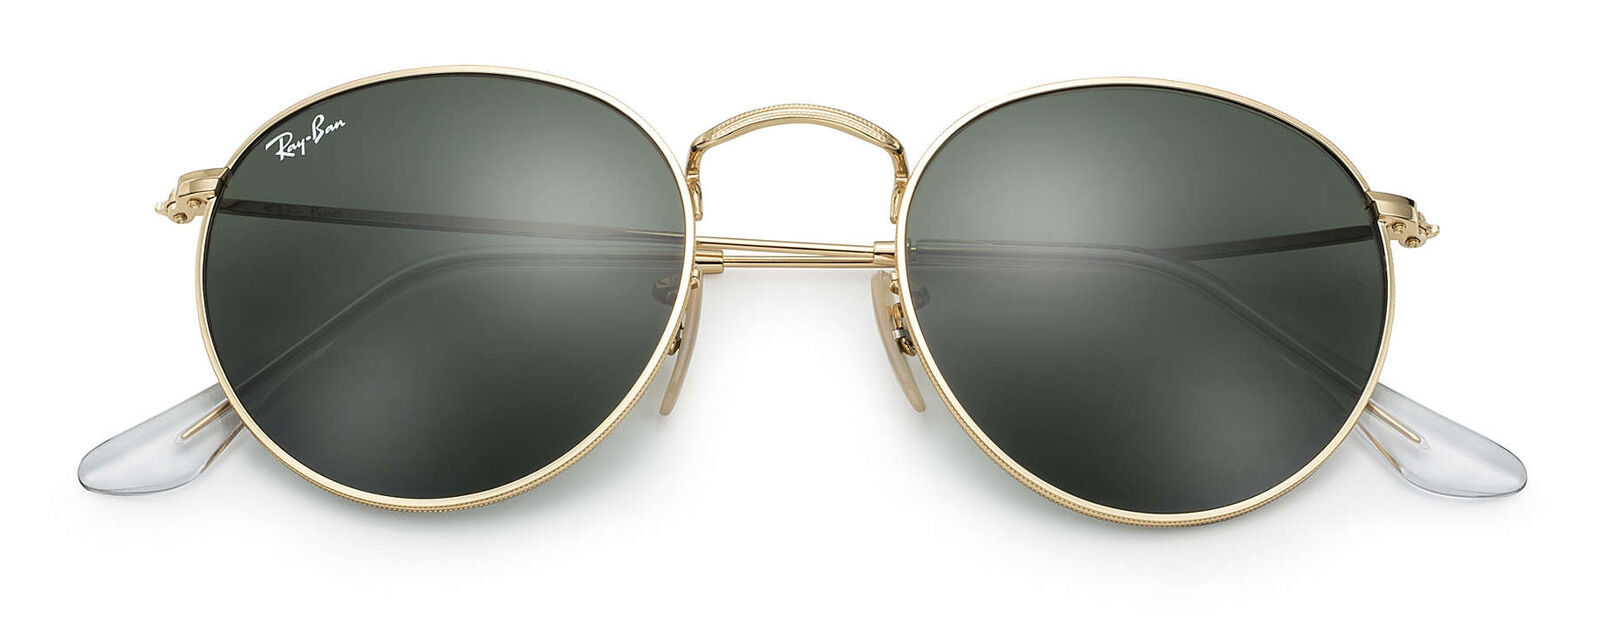 efe9c67bdc5 Ray-Ban 50mm Round Metal Gold Framed Sunglasses - Green ...